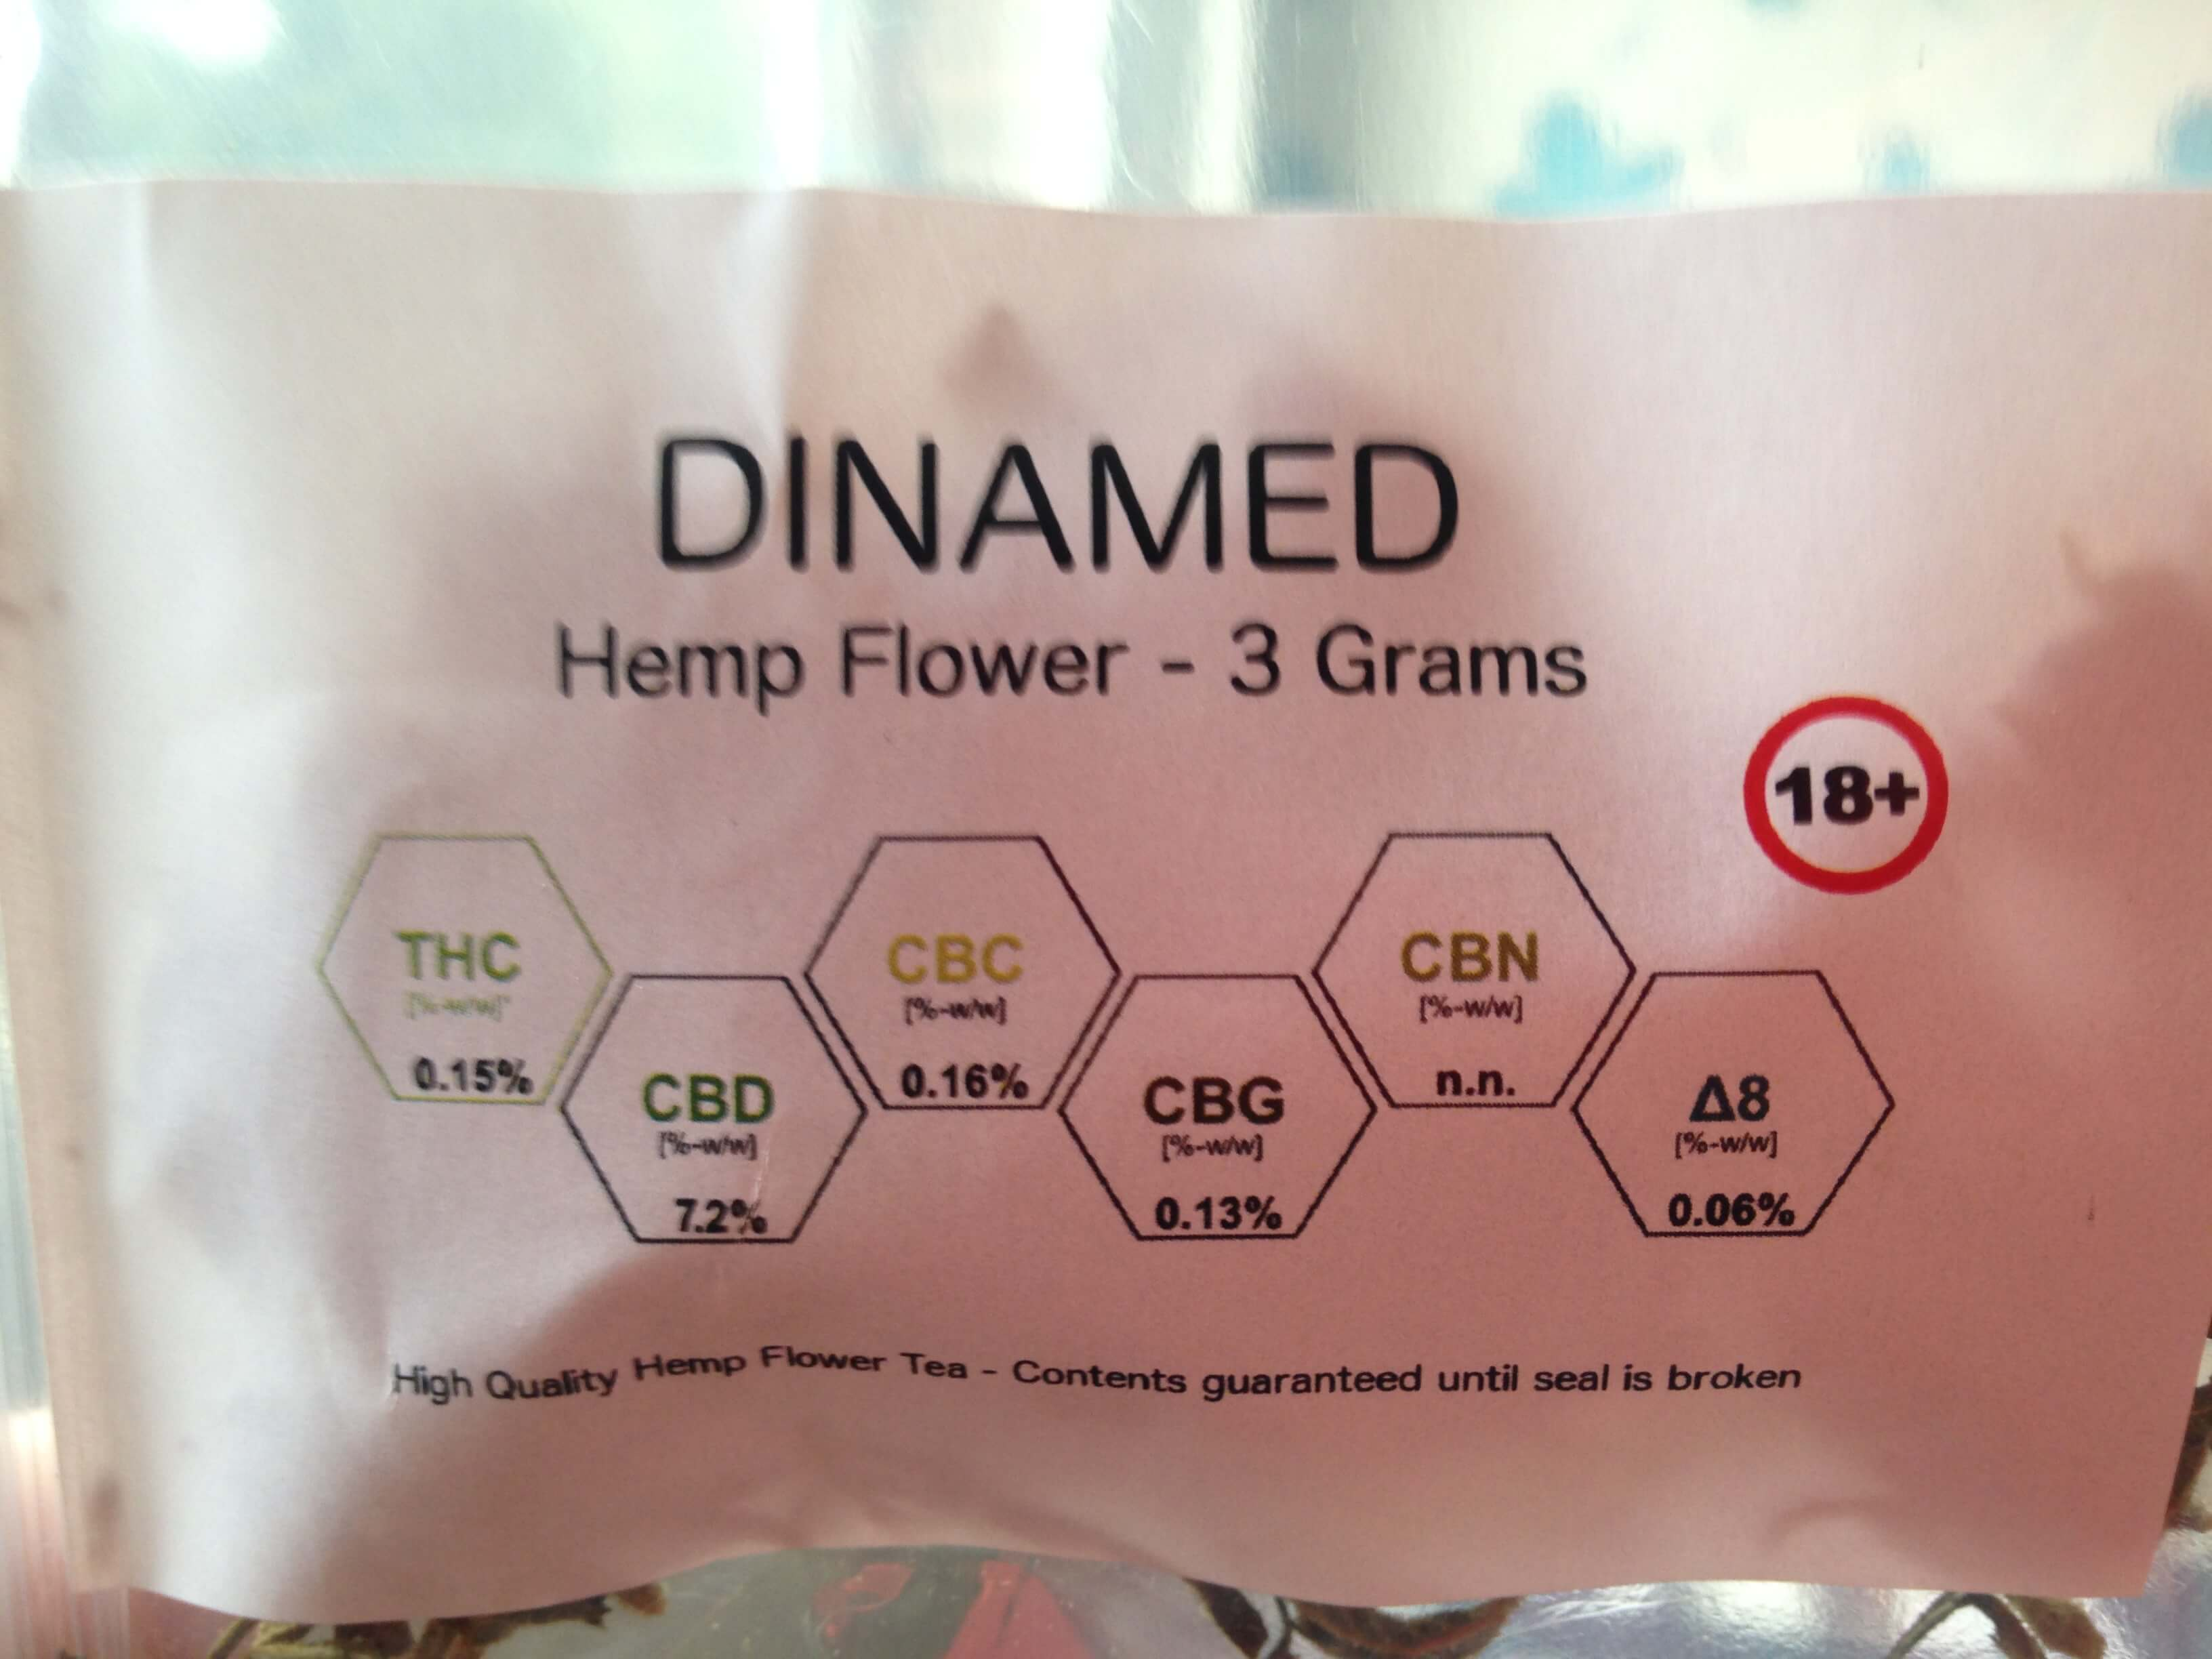 CBD Flower Strain Review: Dinamed From IceHeadShop.com